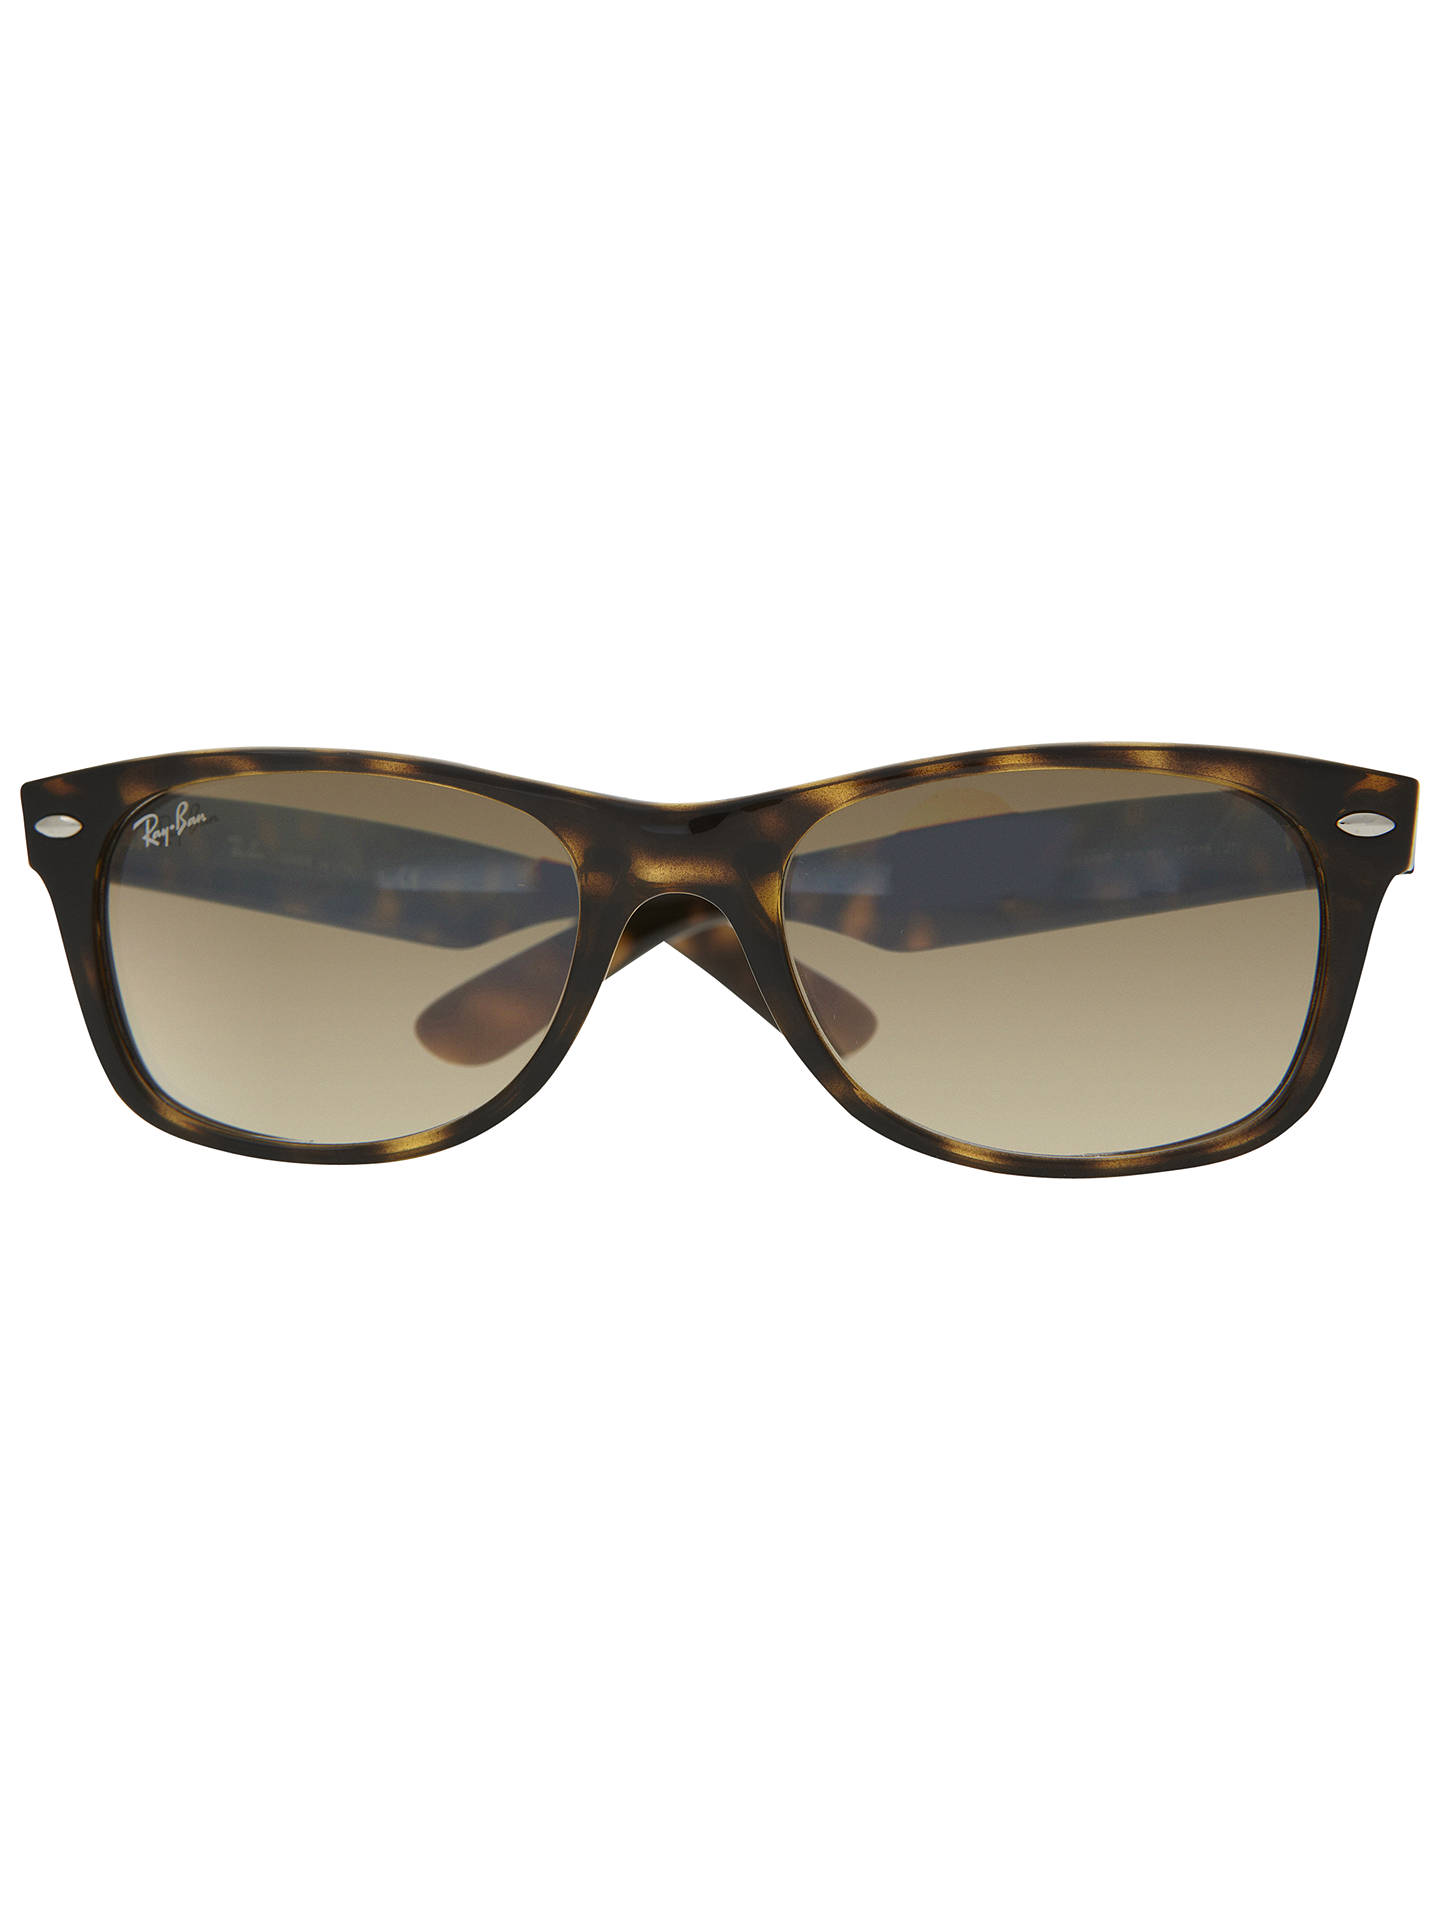 BuyRay-Ban RB2132 Wayfarer Sunglasses, Havana Online at johnlewis.com